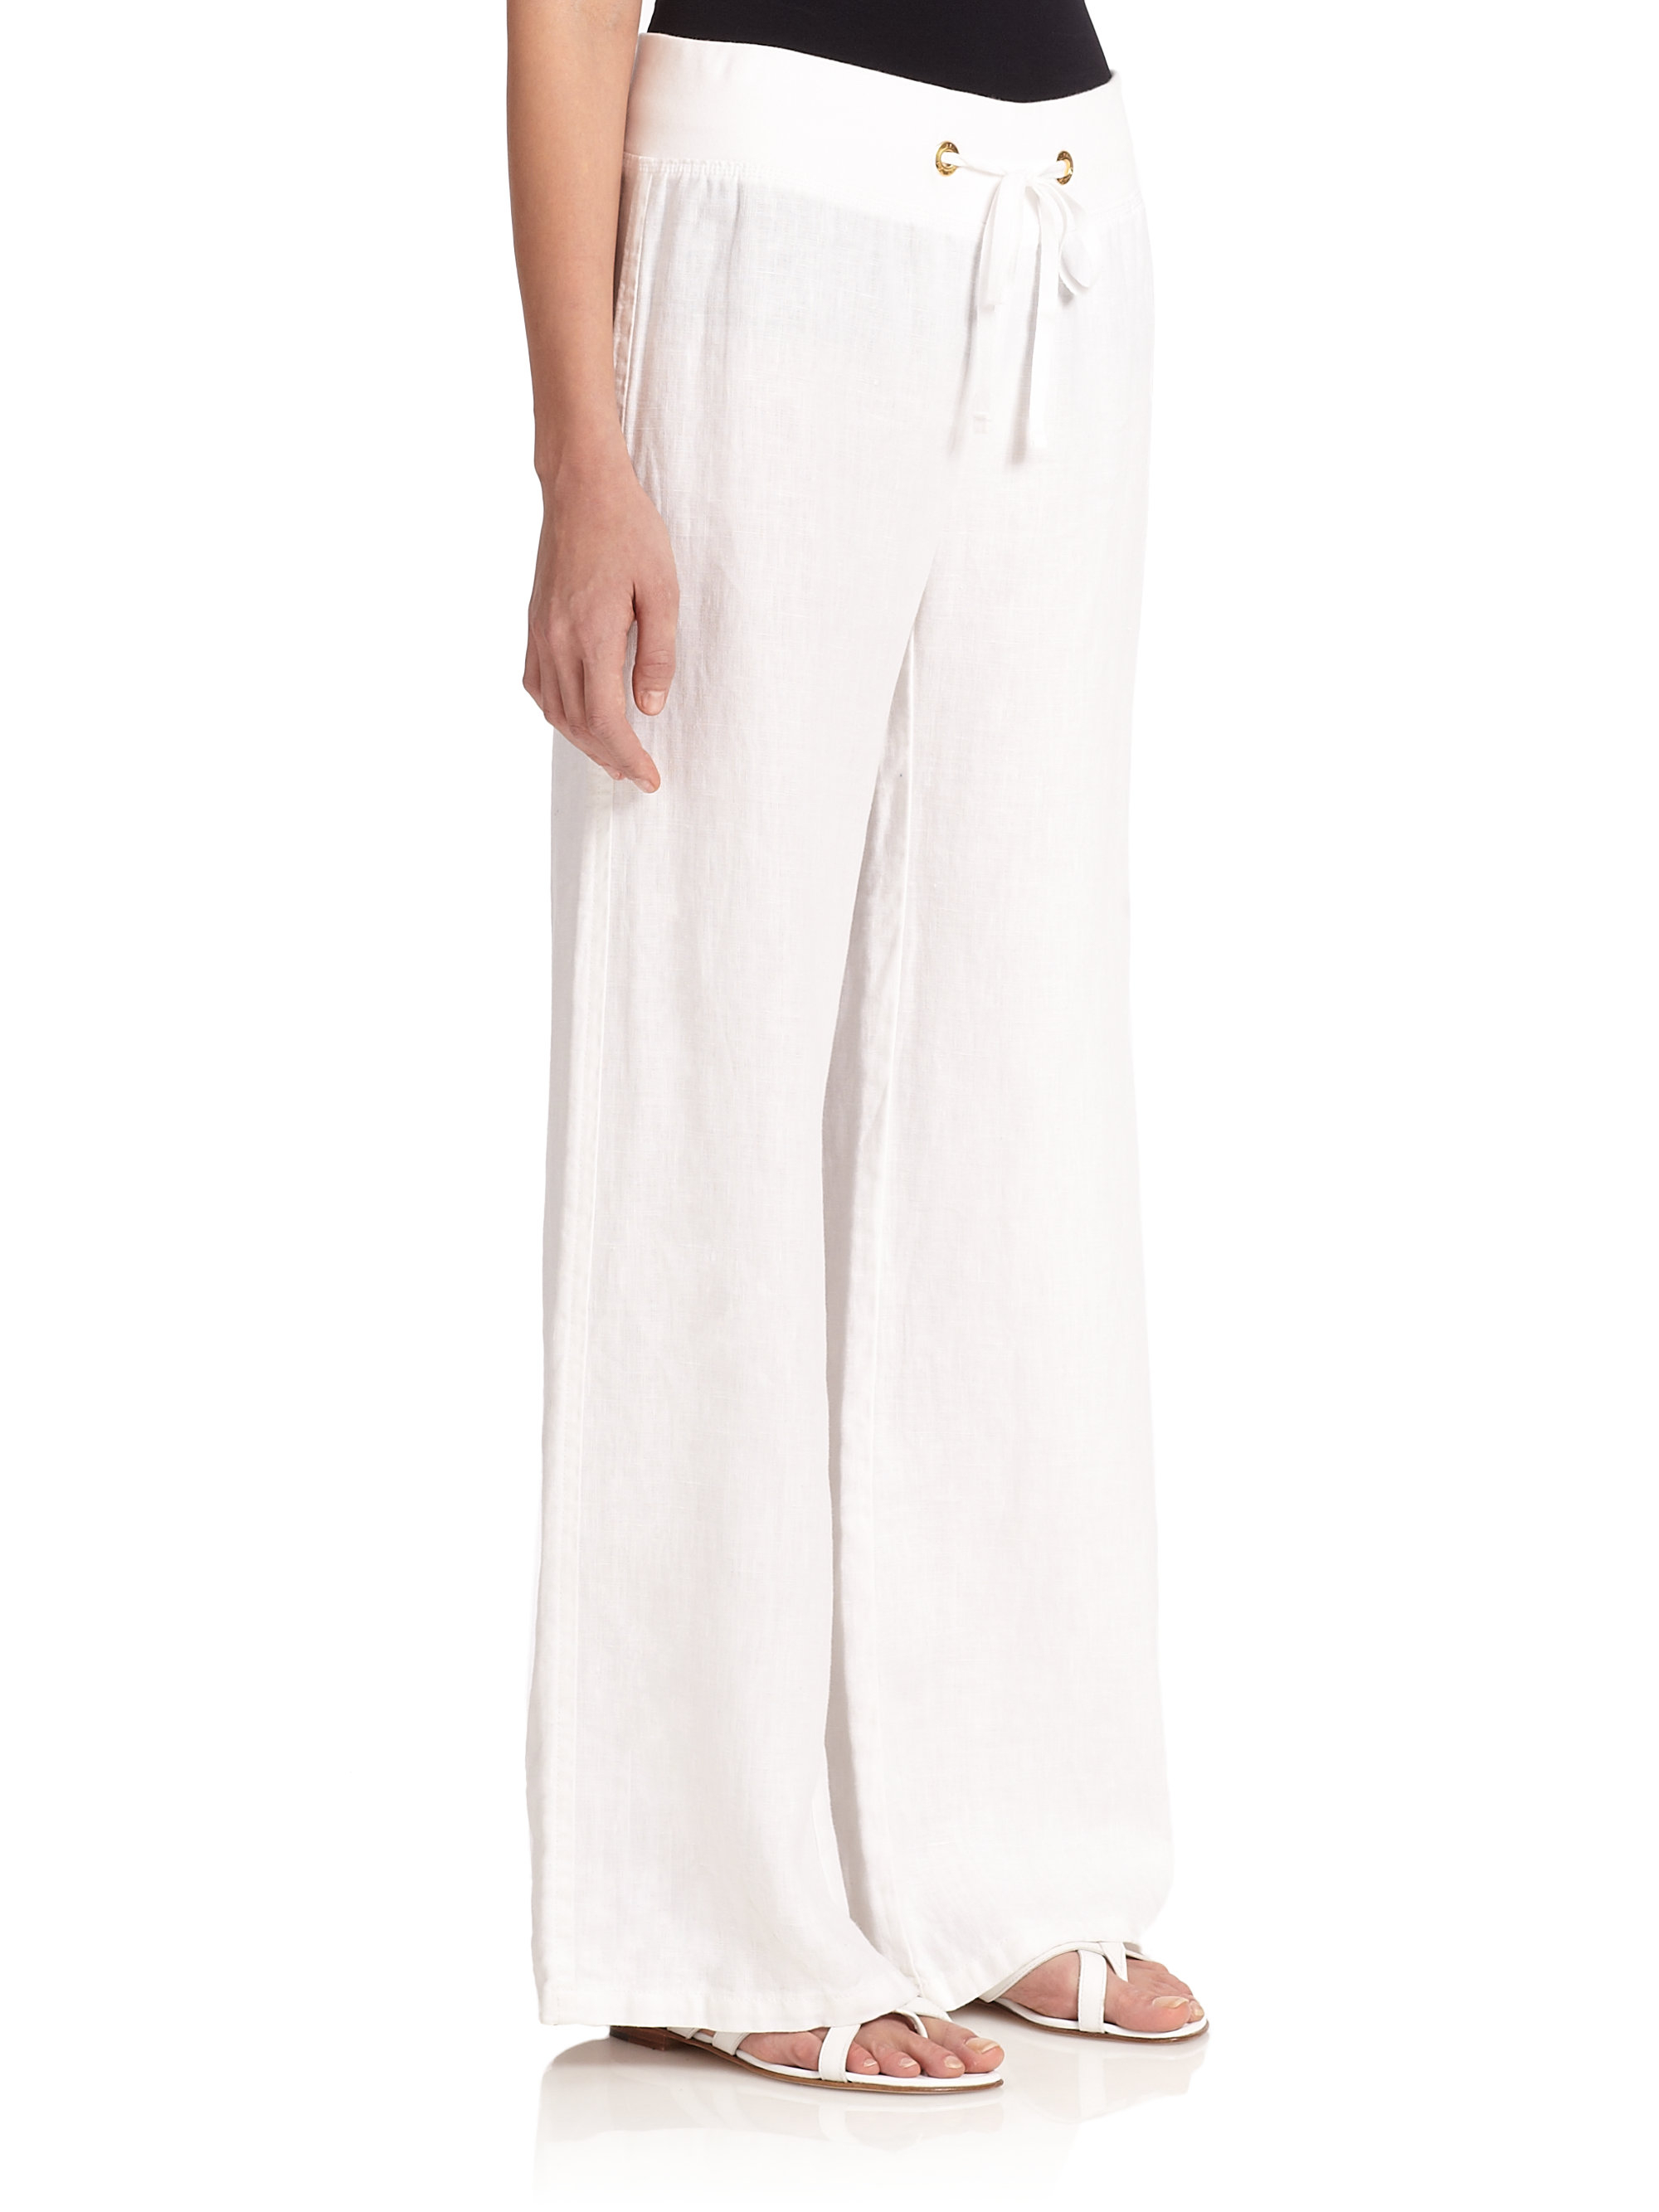 122eb5cd39139 Womens White Linen Beach Pants - Best Style Pants Man And Woman